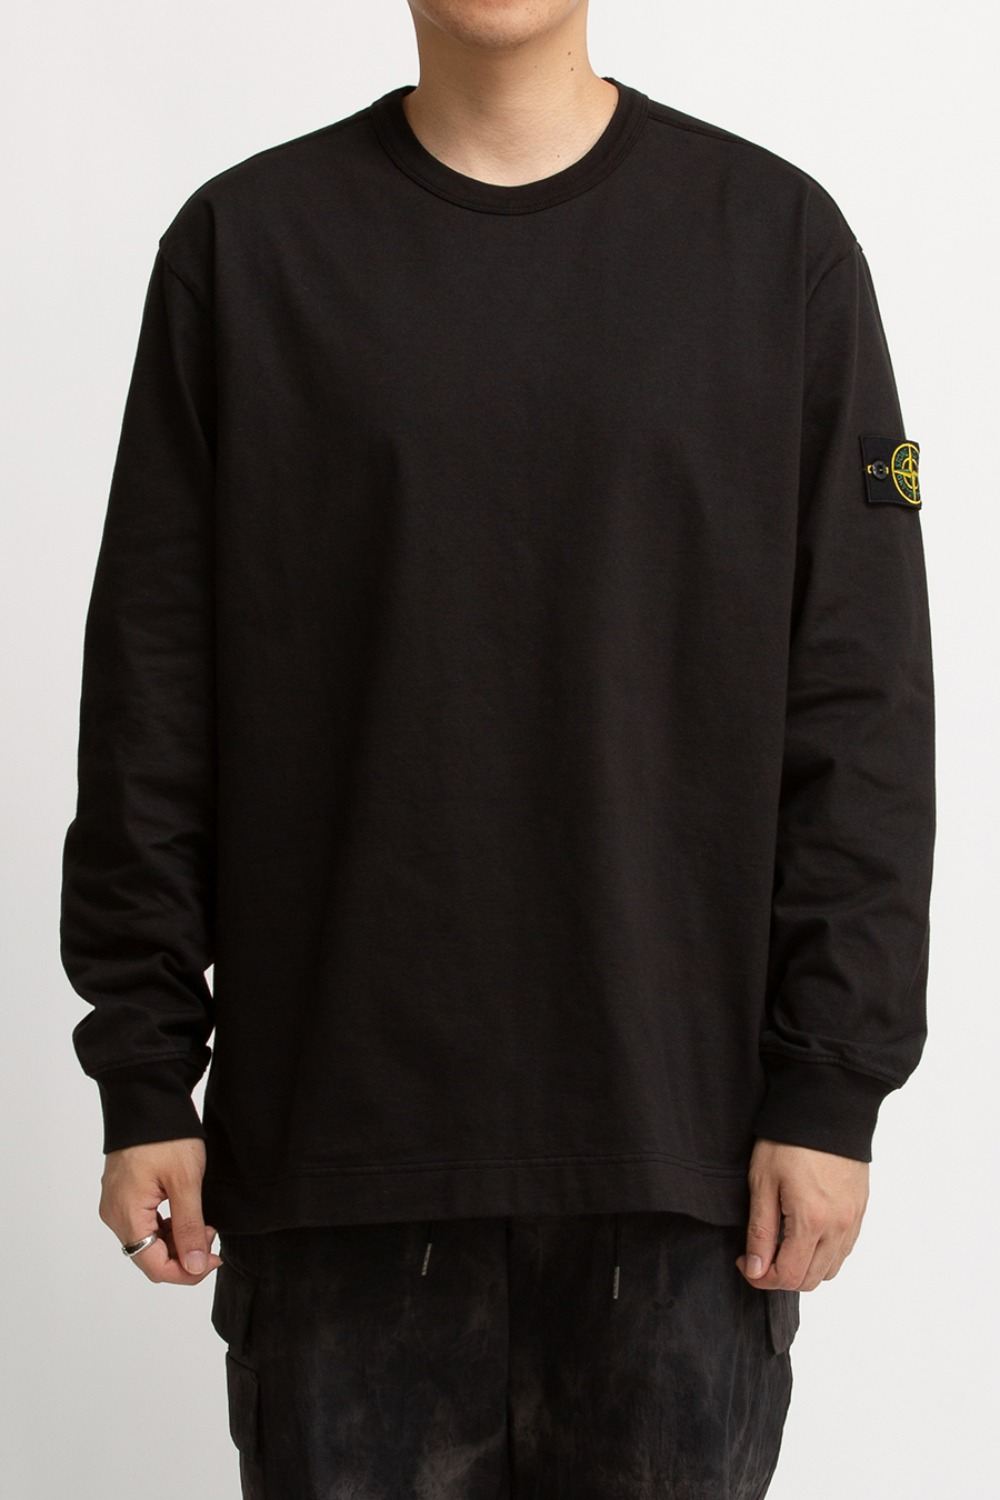 GARMENT DYED CREWNECK SWEATSHIRT BLACK